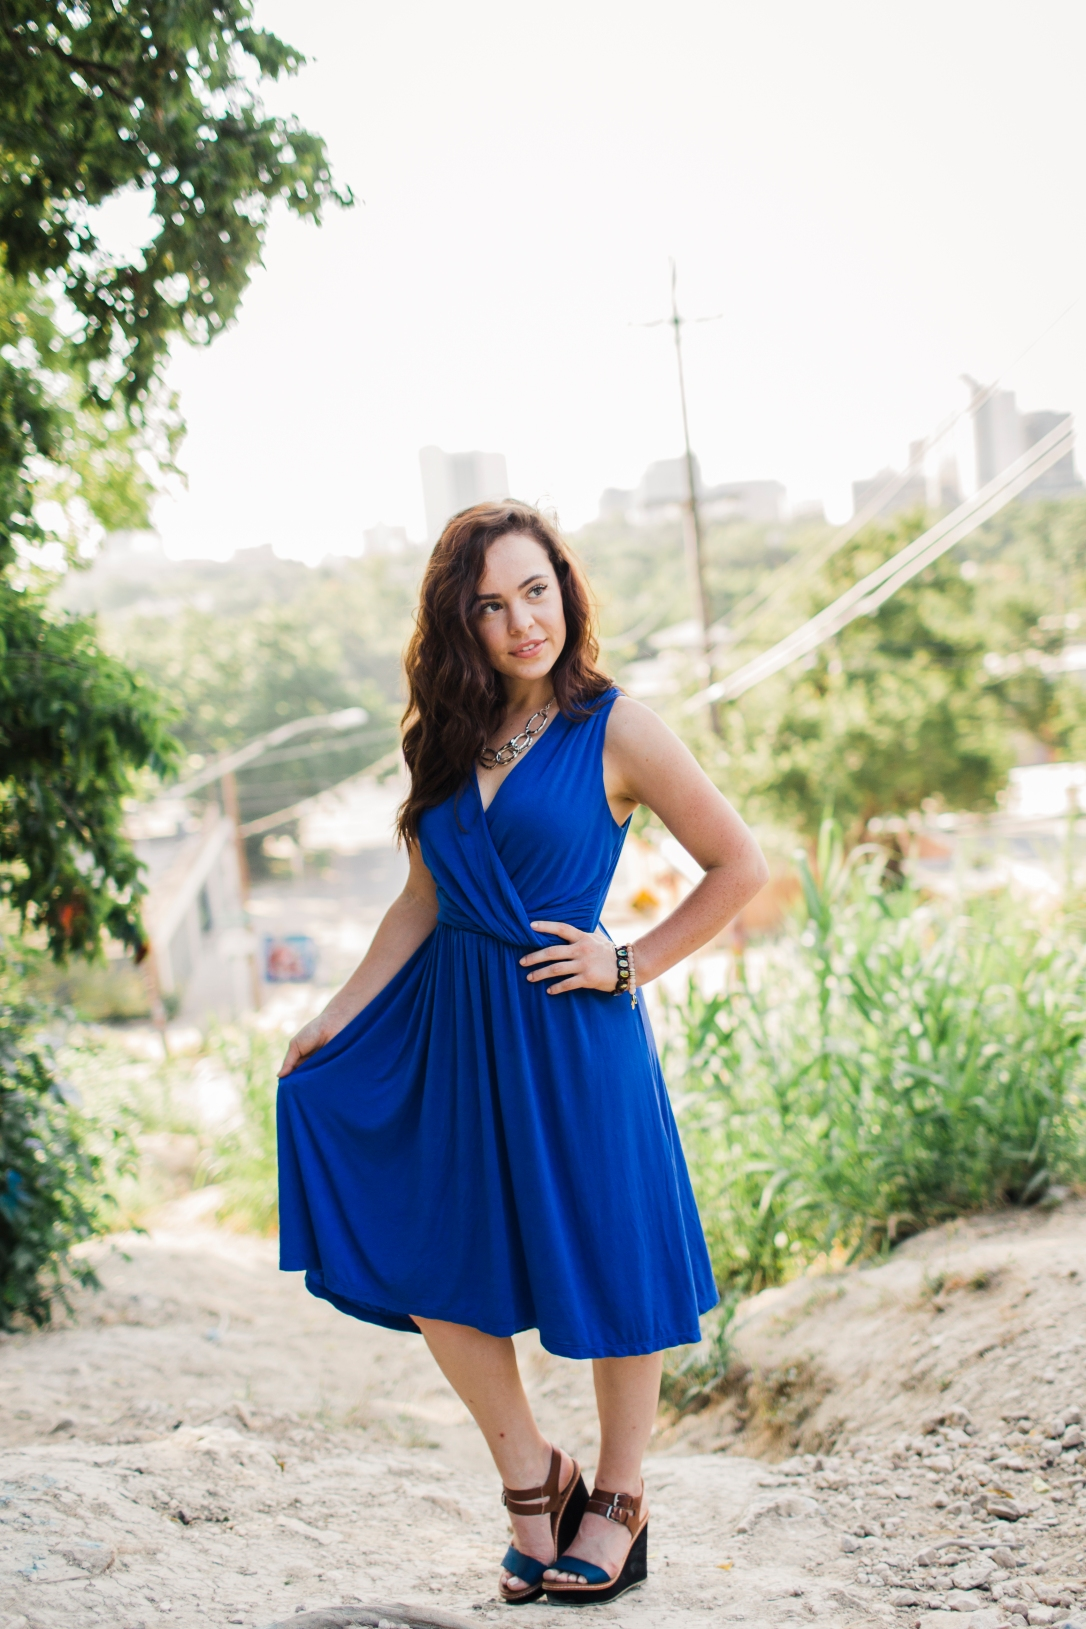 girl-in-blue-dress